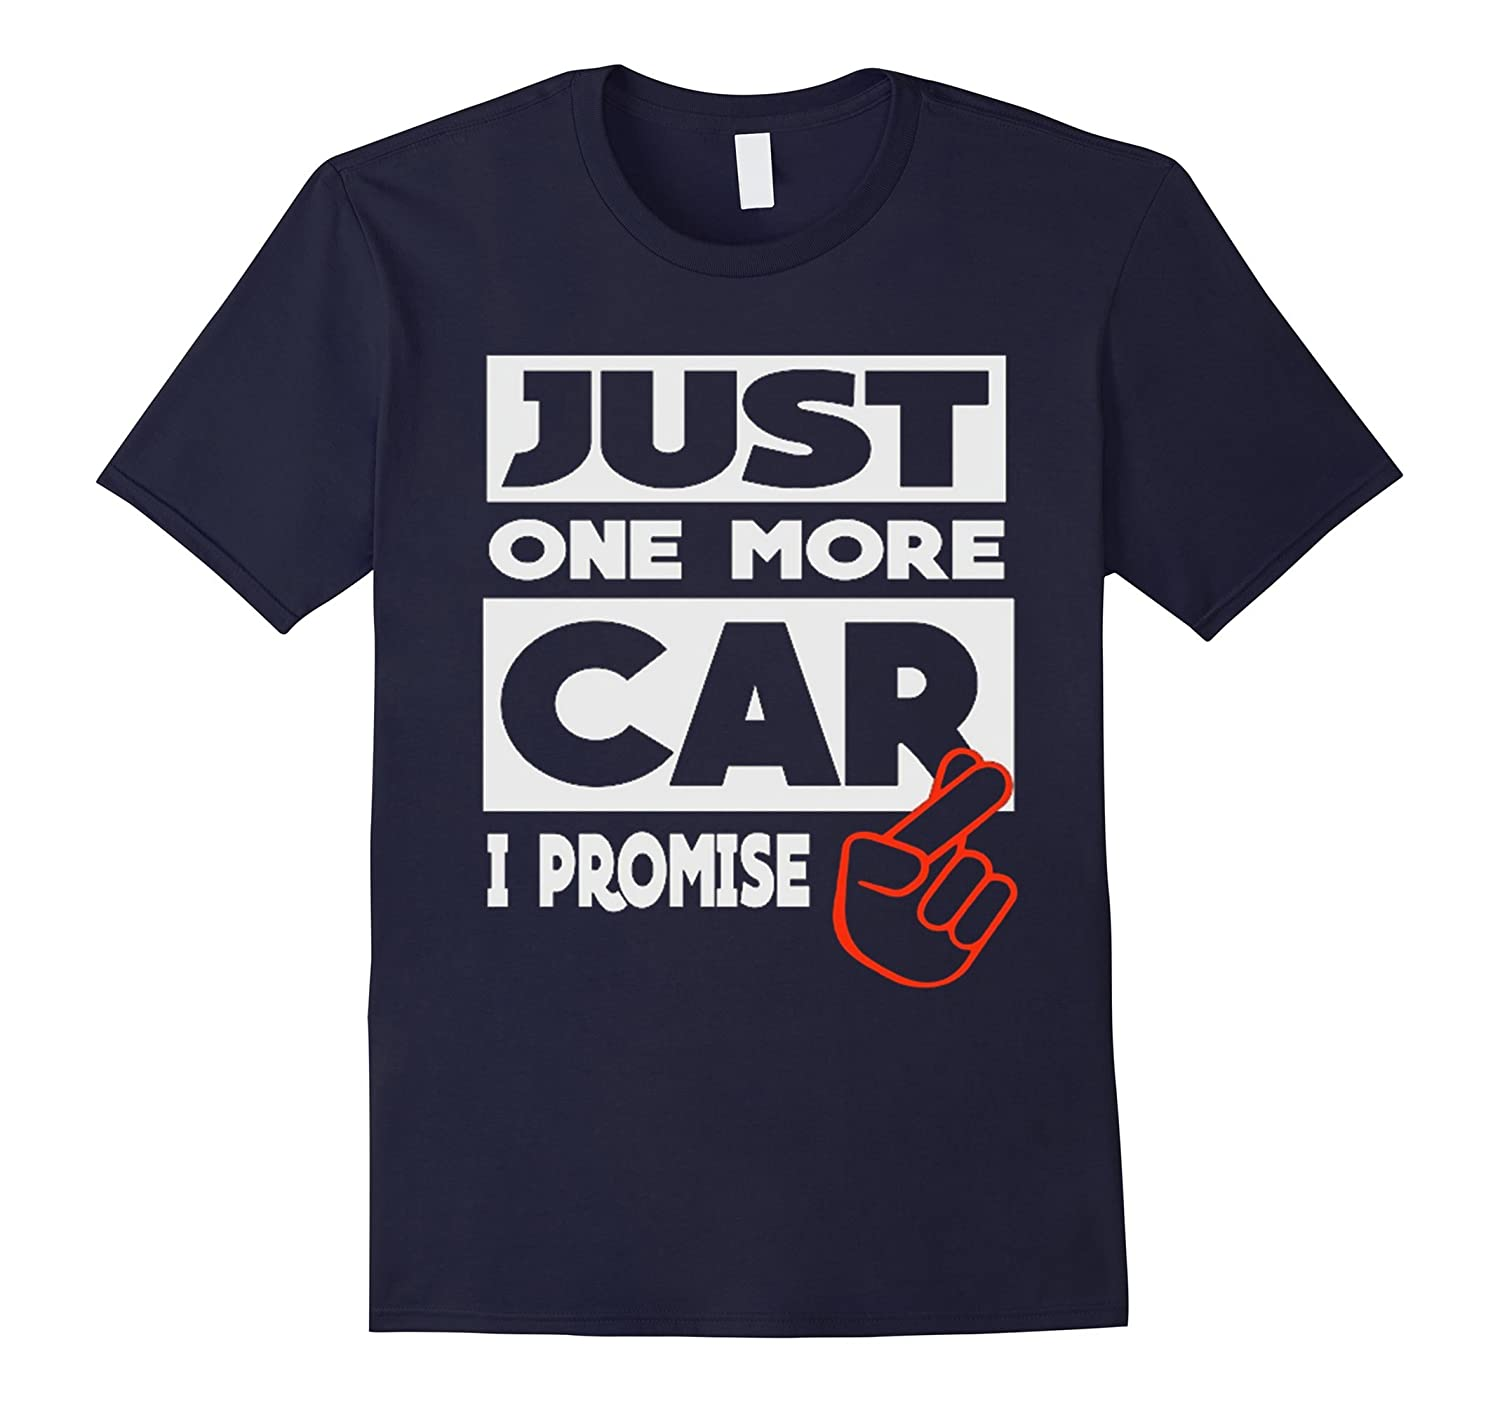 Just One More Car - I Promise-CL